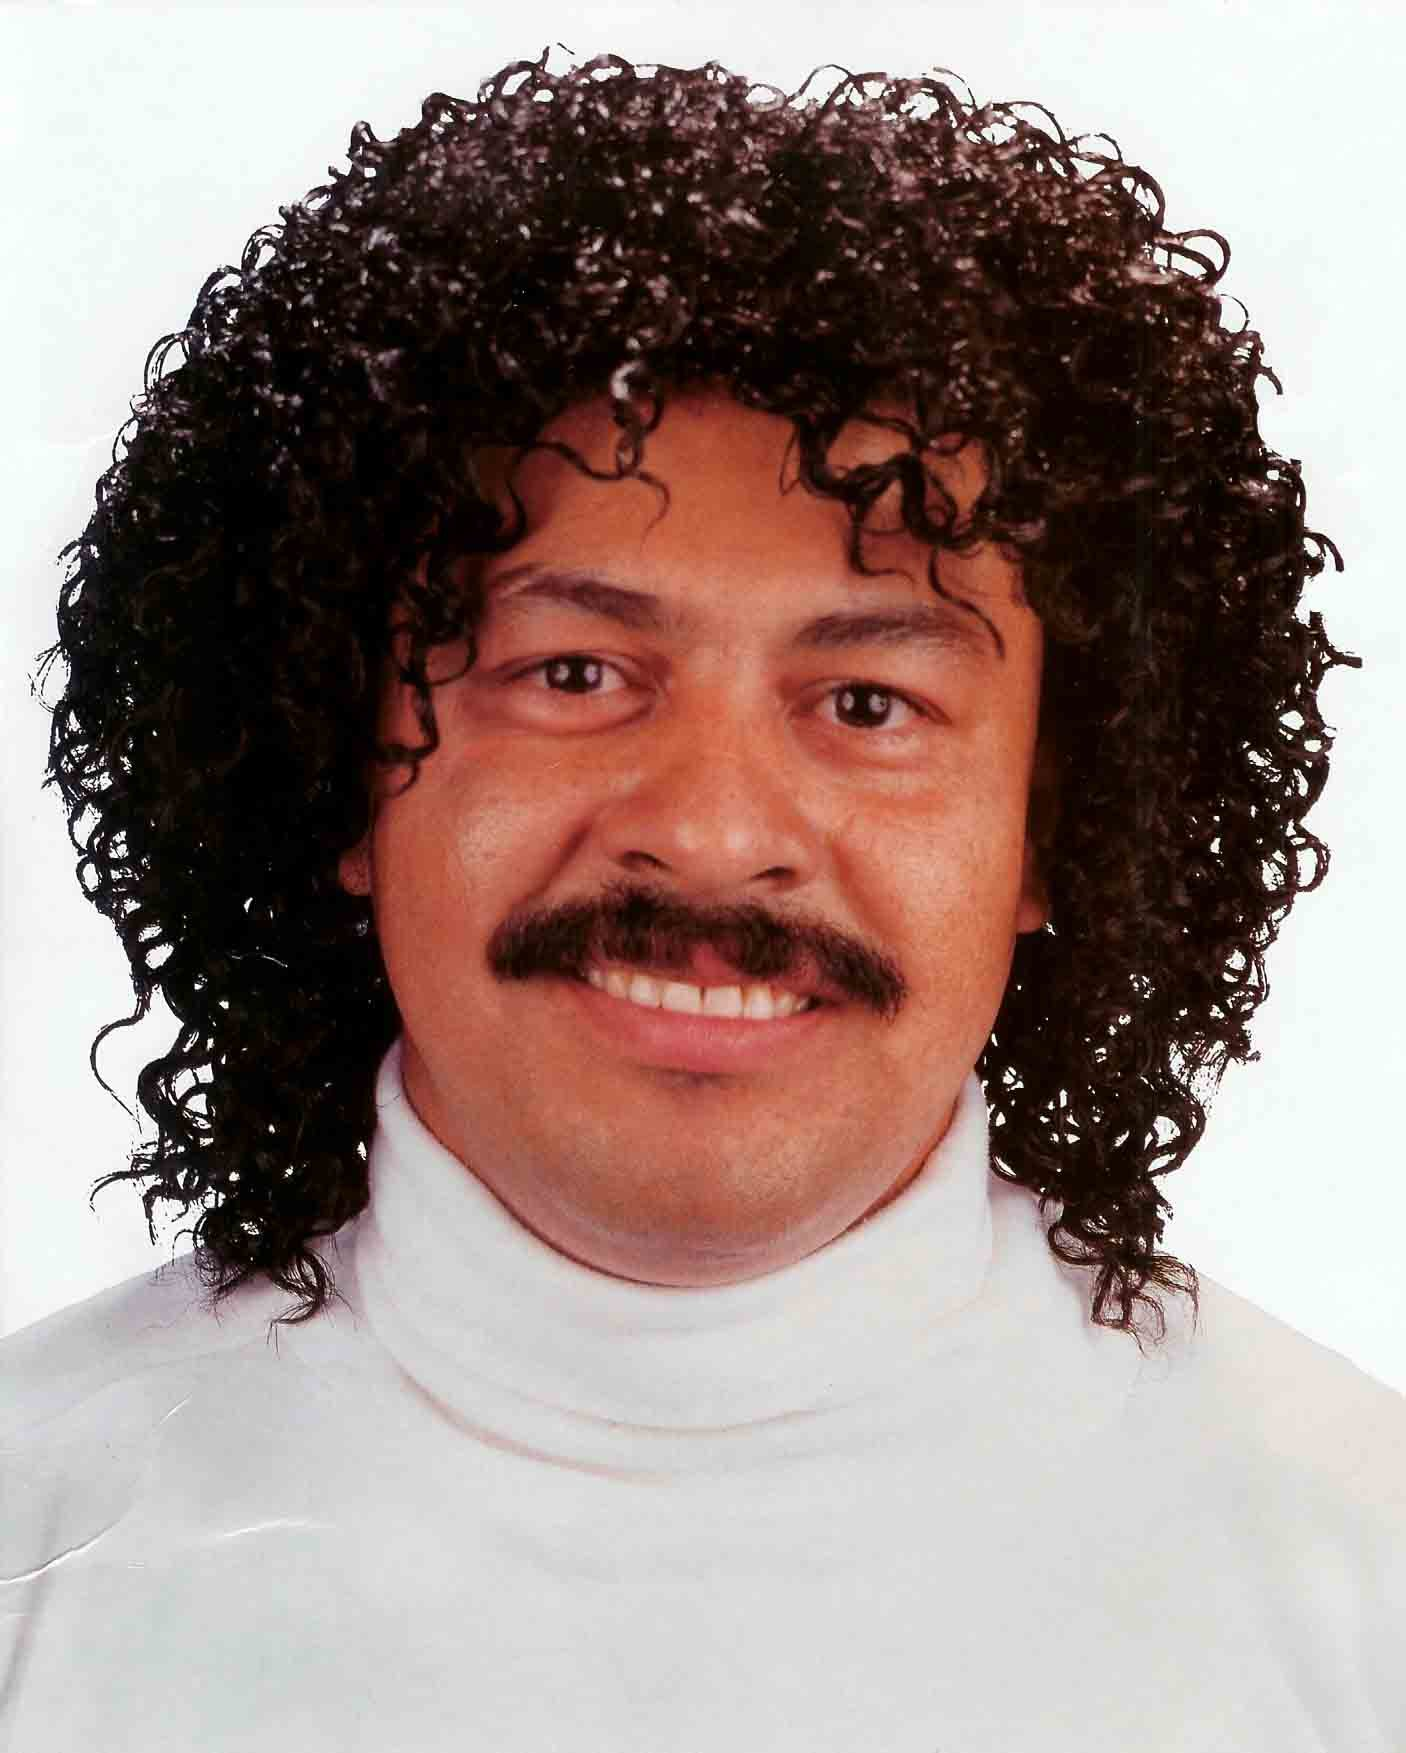 Free Jheri Curls Dead Or In Disguise Sarcastically Serious Wallpaper